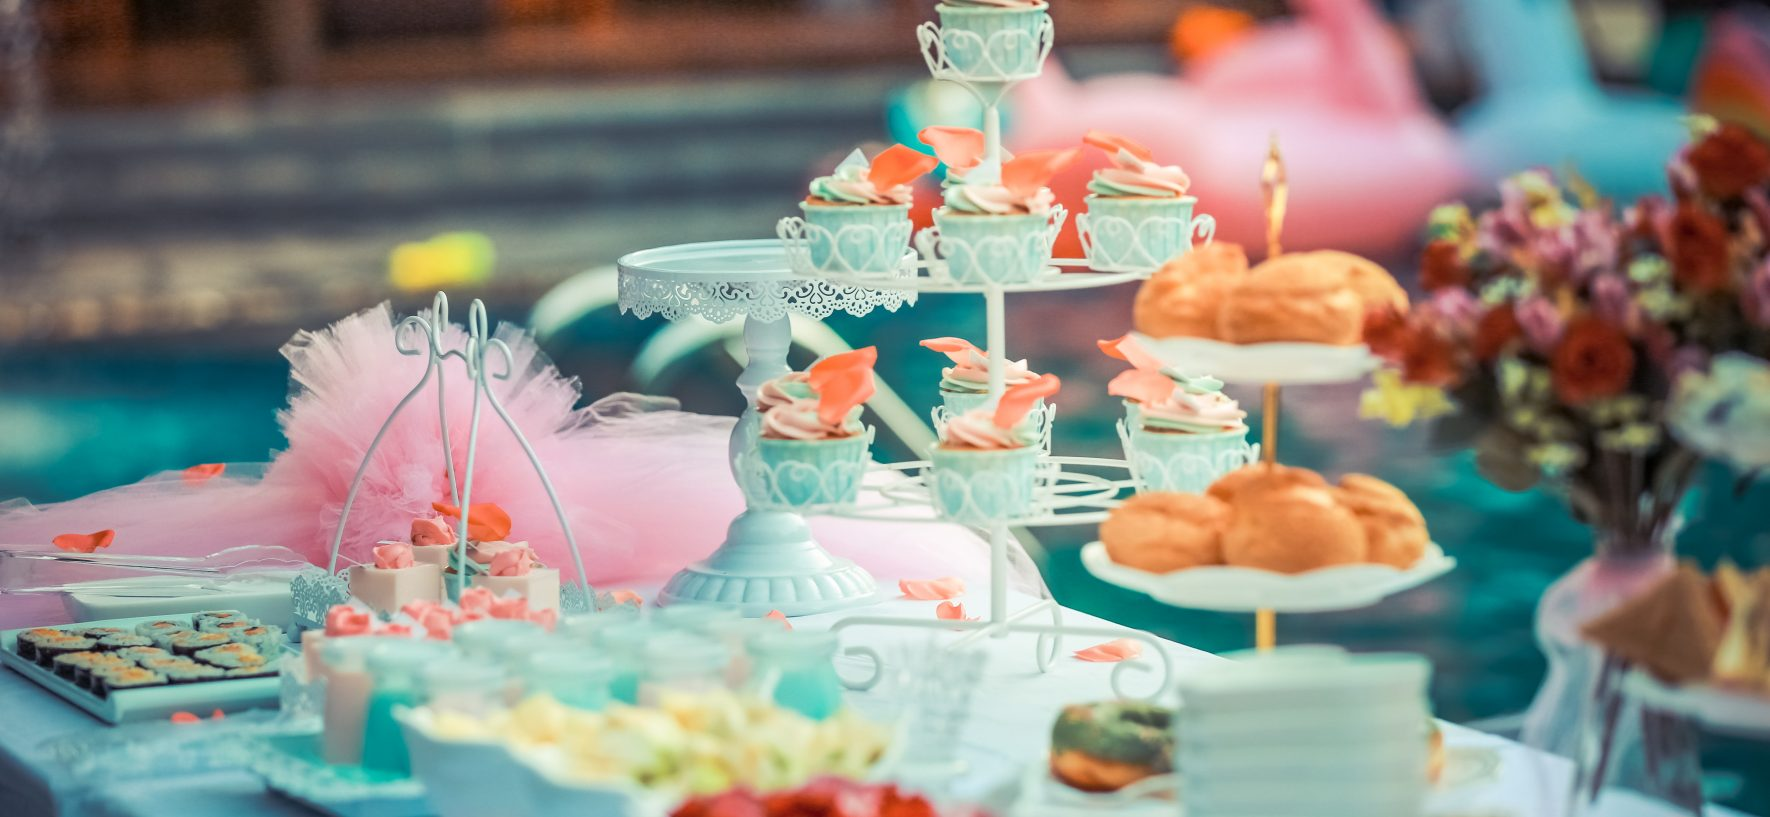 Tips on Party Planning